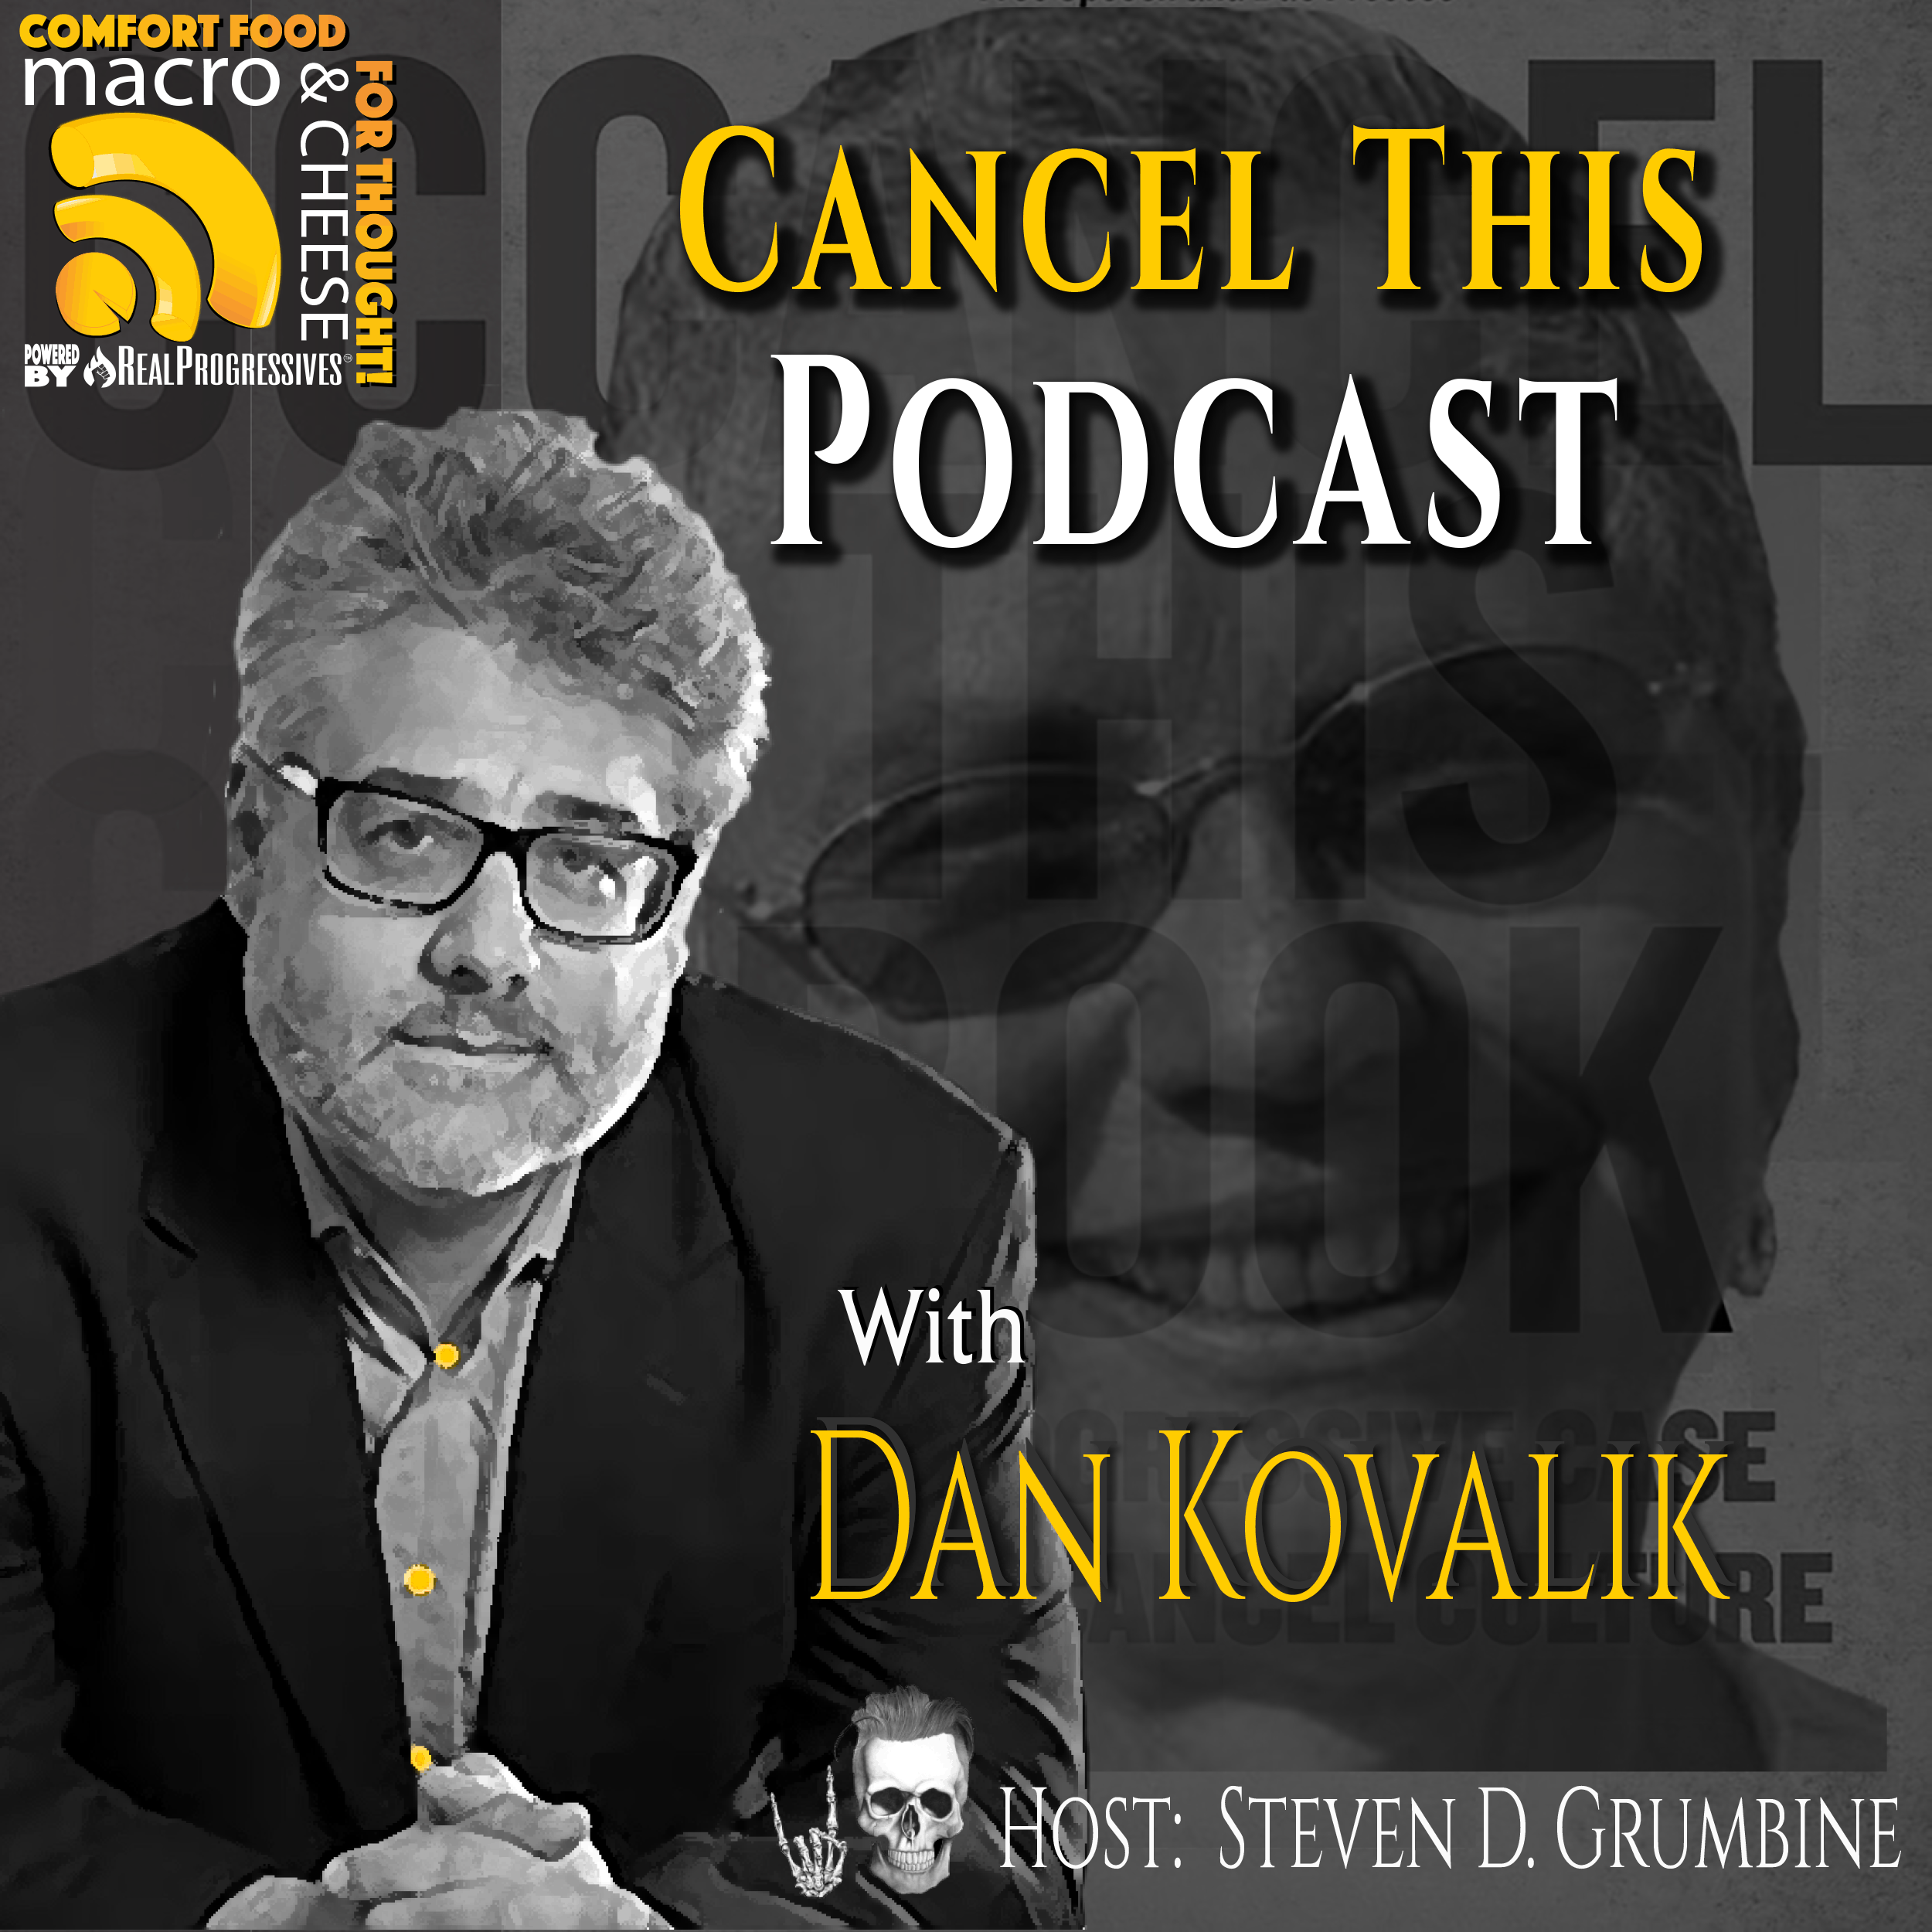 Episode 111 – Cancel This Podcast with Dan Kovalik